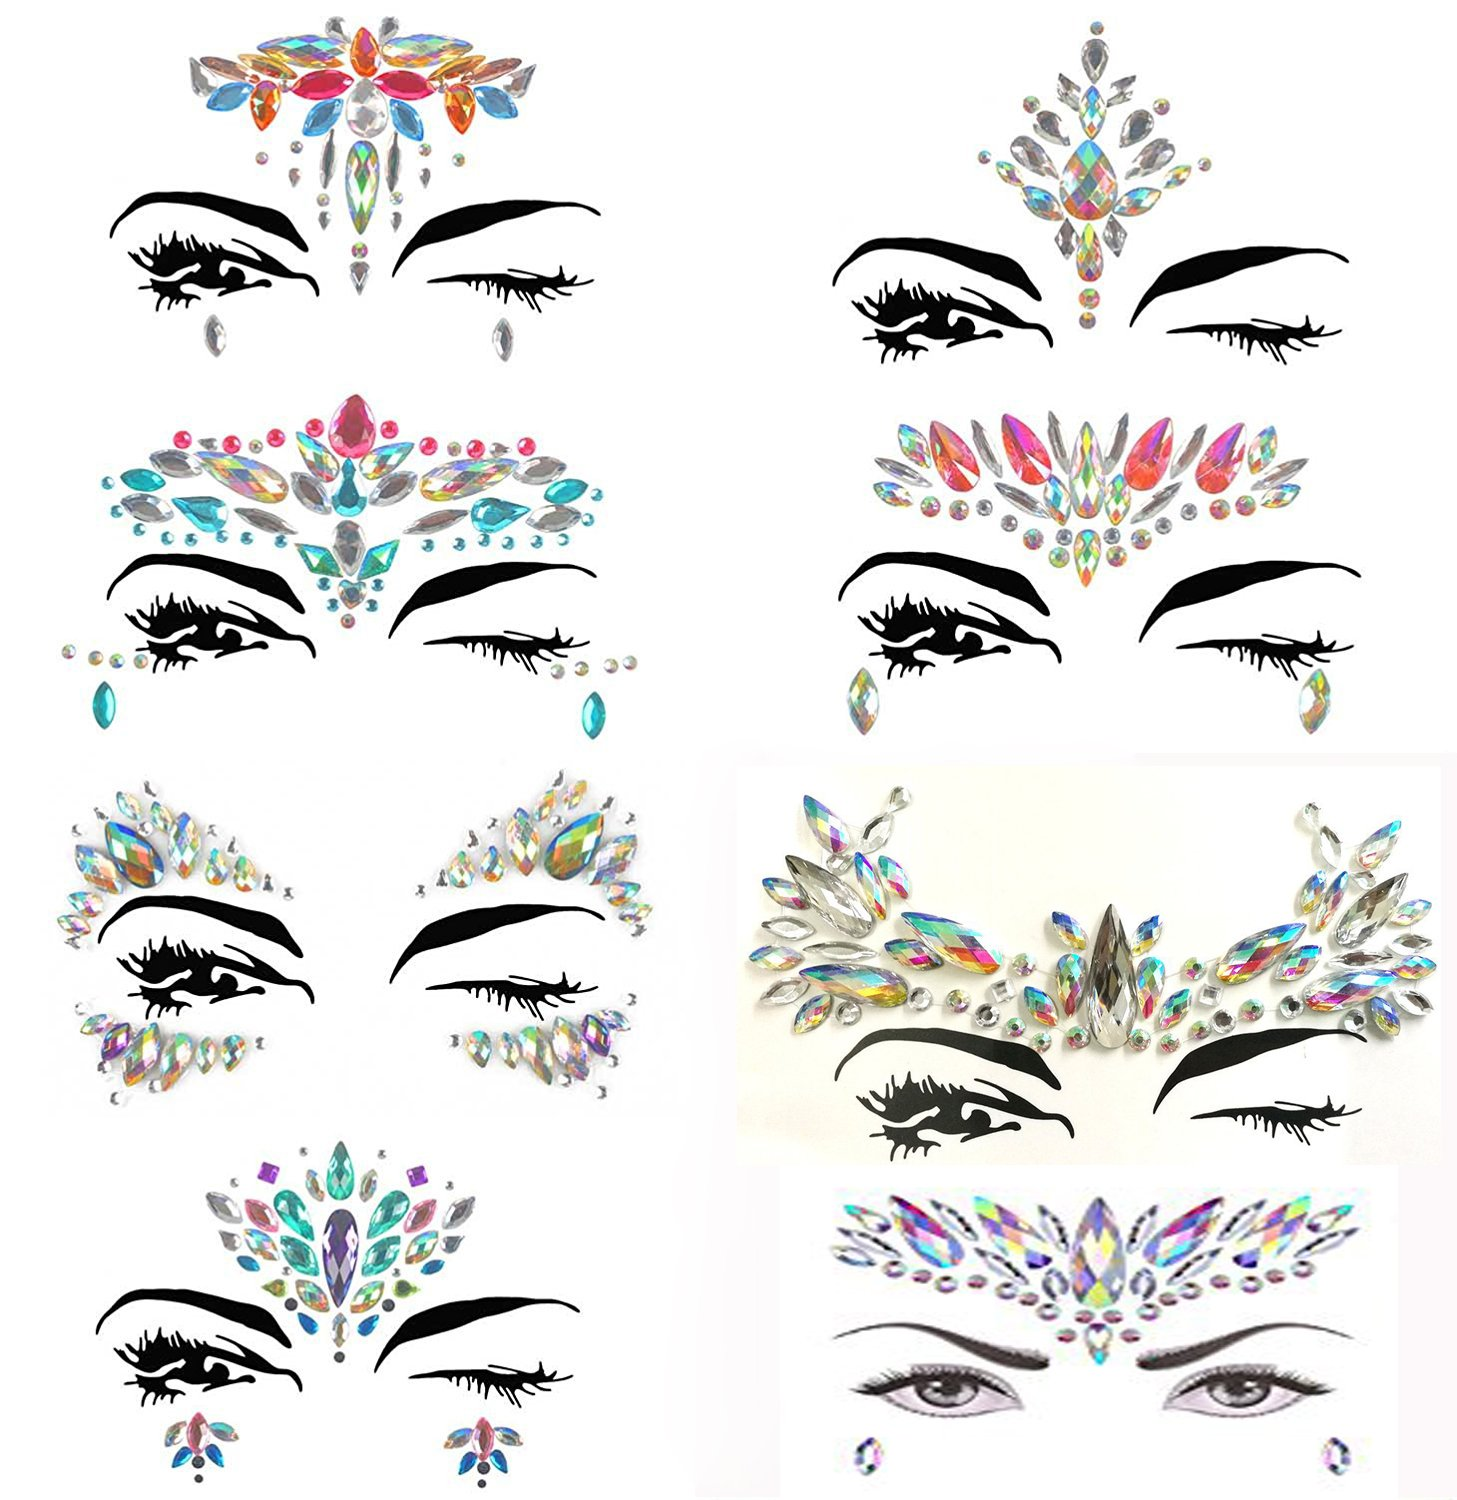 8 Packs Festival Face Jewels Rhinestones Gems Face Crystals Tattoo Jewelry for Forehead Body Decorations Party Supplies, Makeup Rhinestone Face Jewels Stickers, Women Mermaid Face Gems Glitter